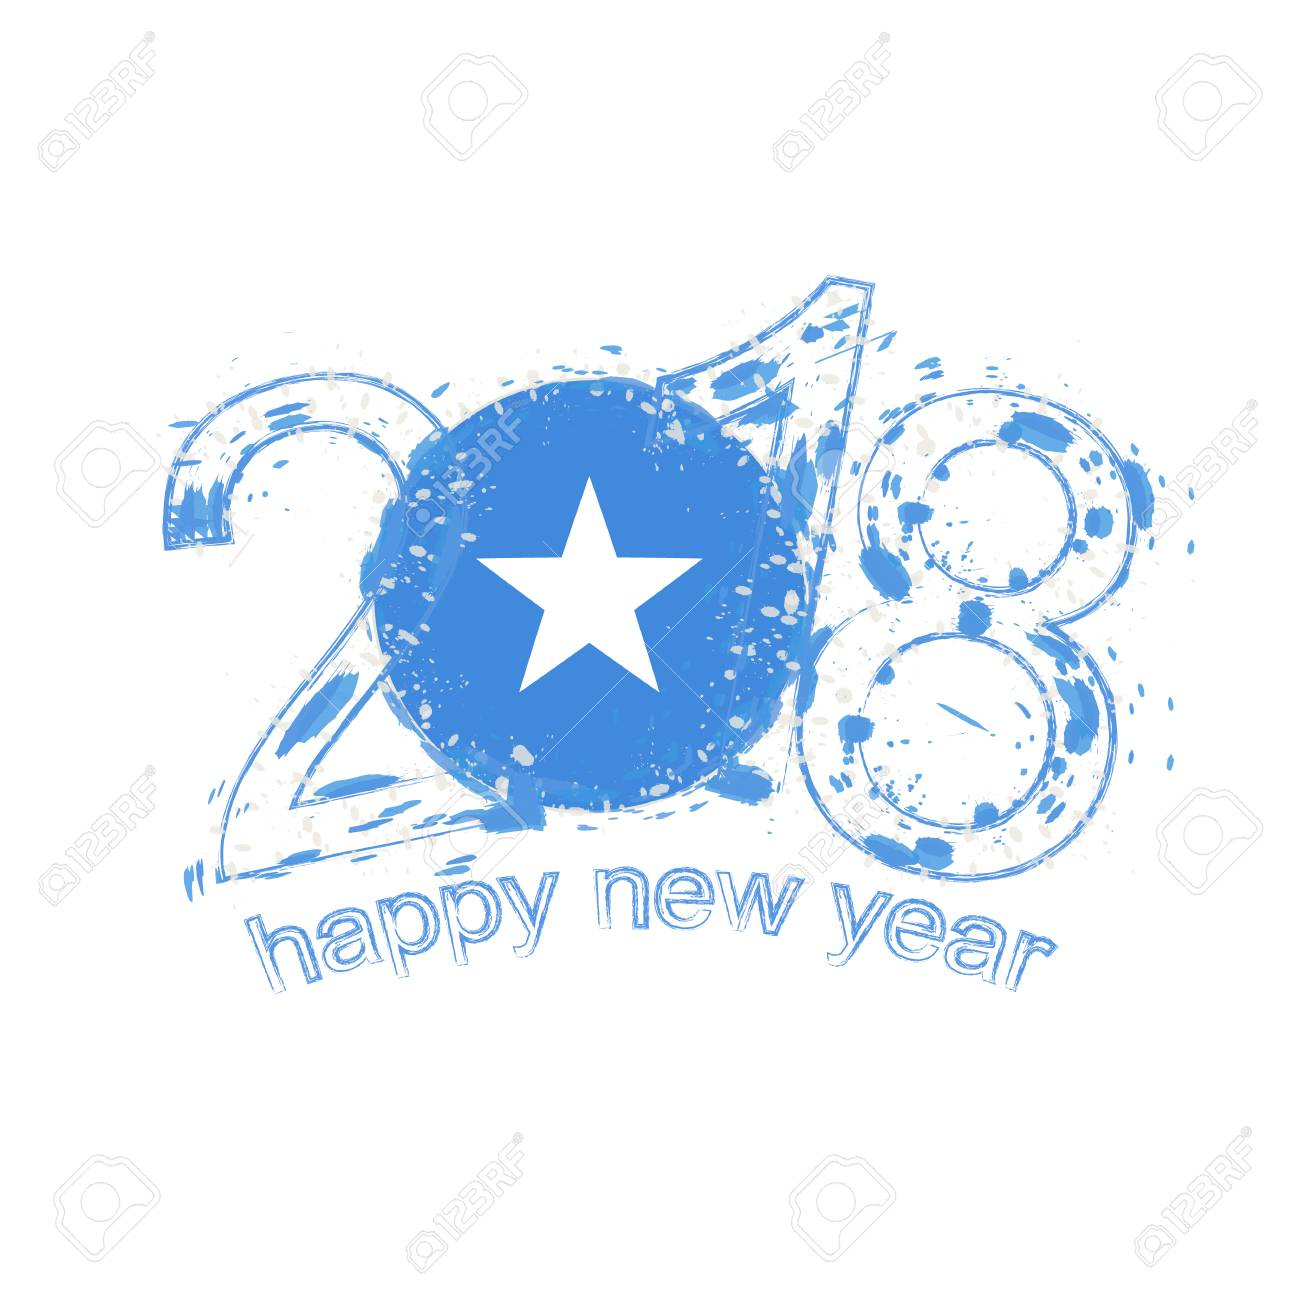 2018 Happy New Year Somalia Grunge Vector Template For Greeting ...